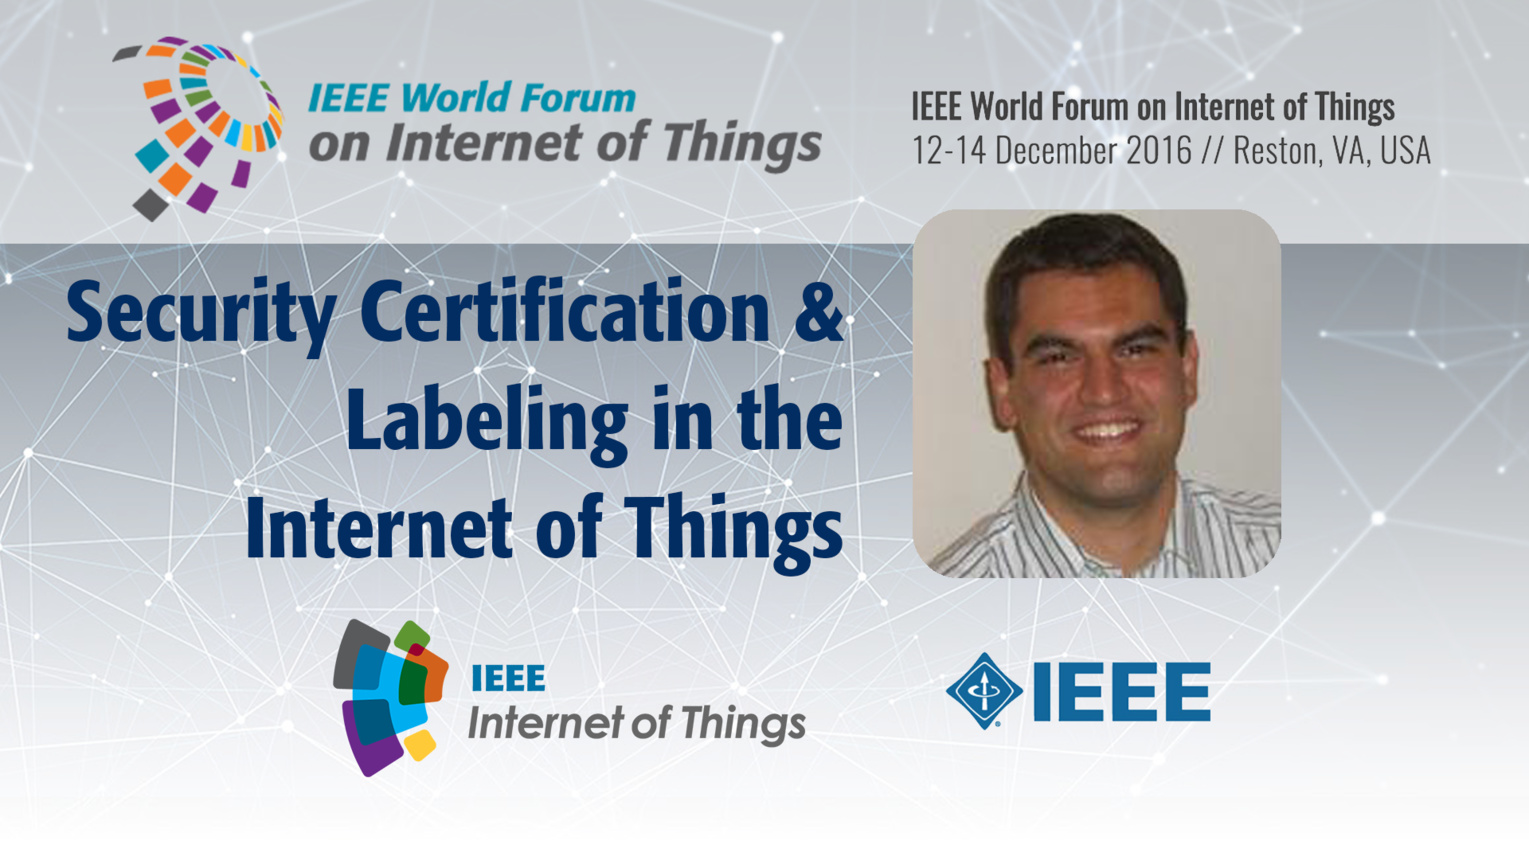 Ricardo Neisse: Security Certification and Labeling in the Internet of Things: WF-IoT 2016